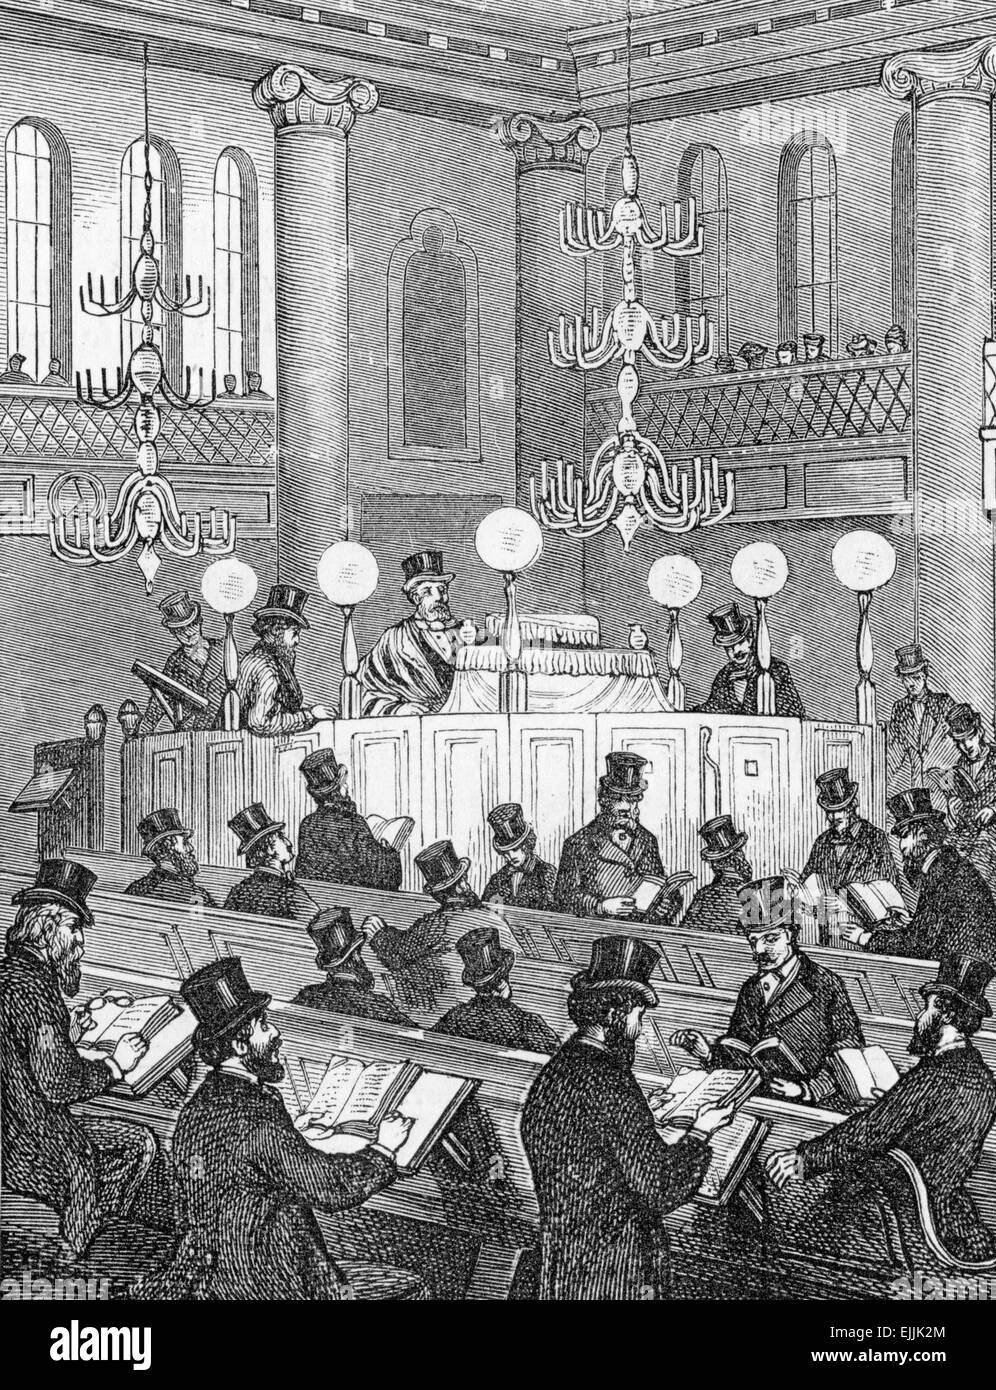 Inside a 'modern' synagogue - in 18th century Britain - Stock Image